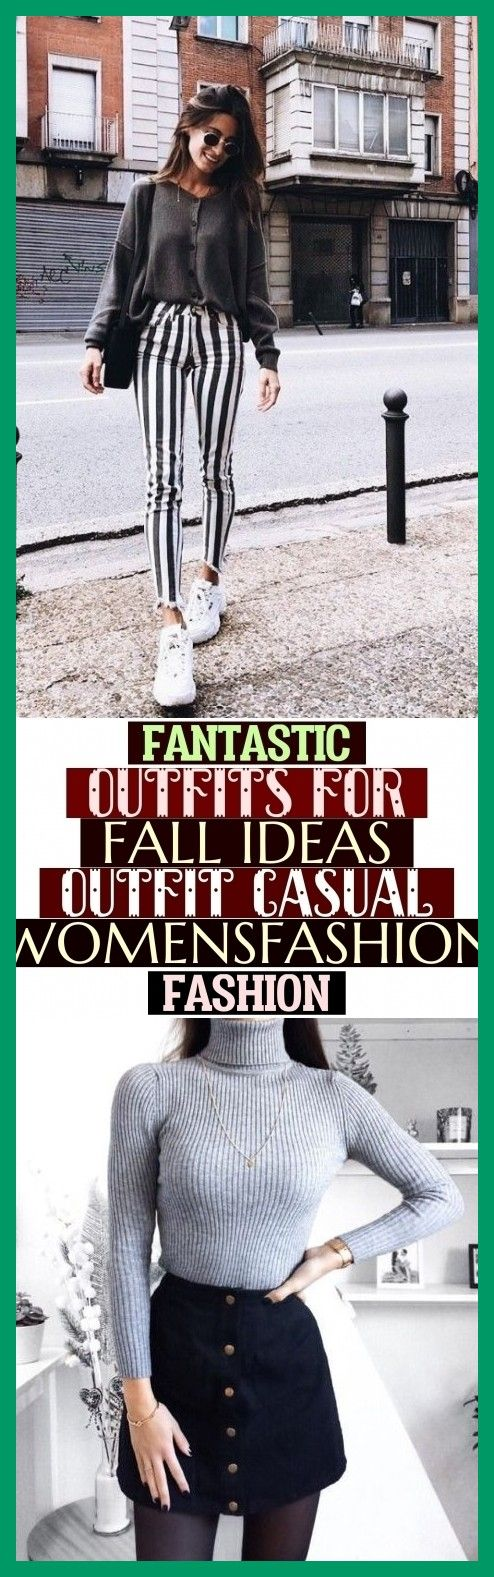 More Than 70 Fantastic Outfits For Fall Ideas Outfit Casual Womensfashion Fashion  Fantastic 80 Outfits for Fall Ideas